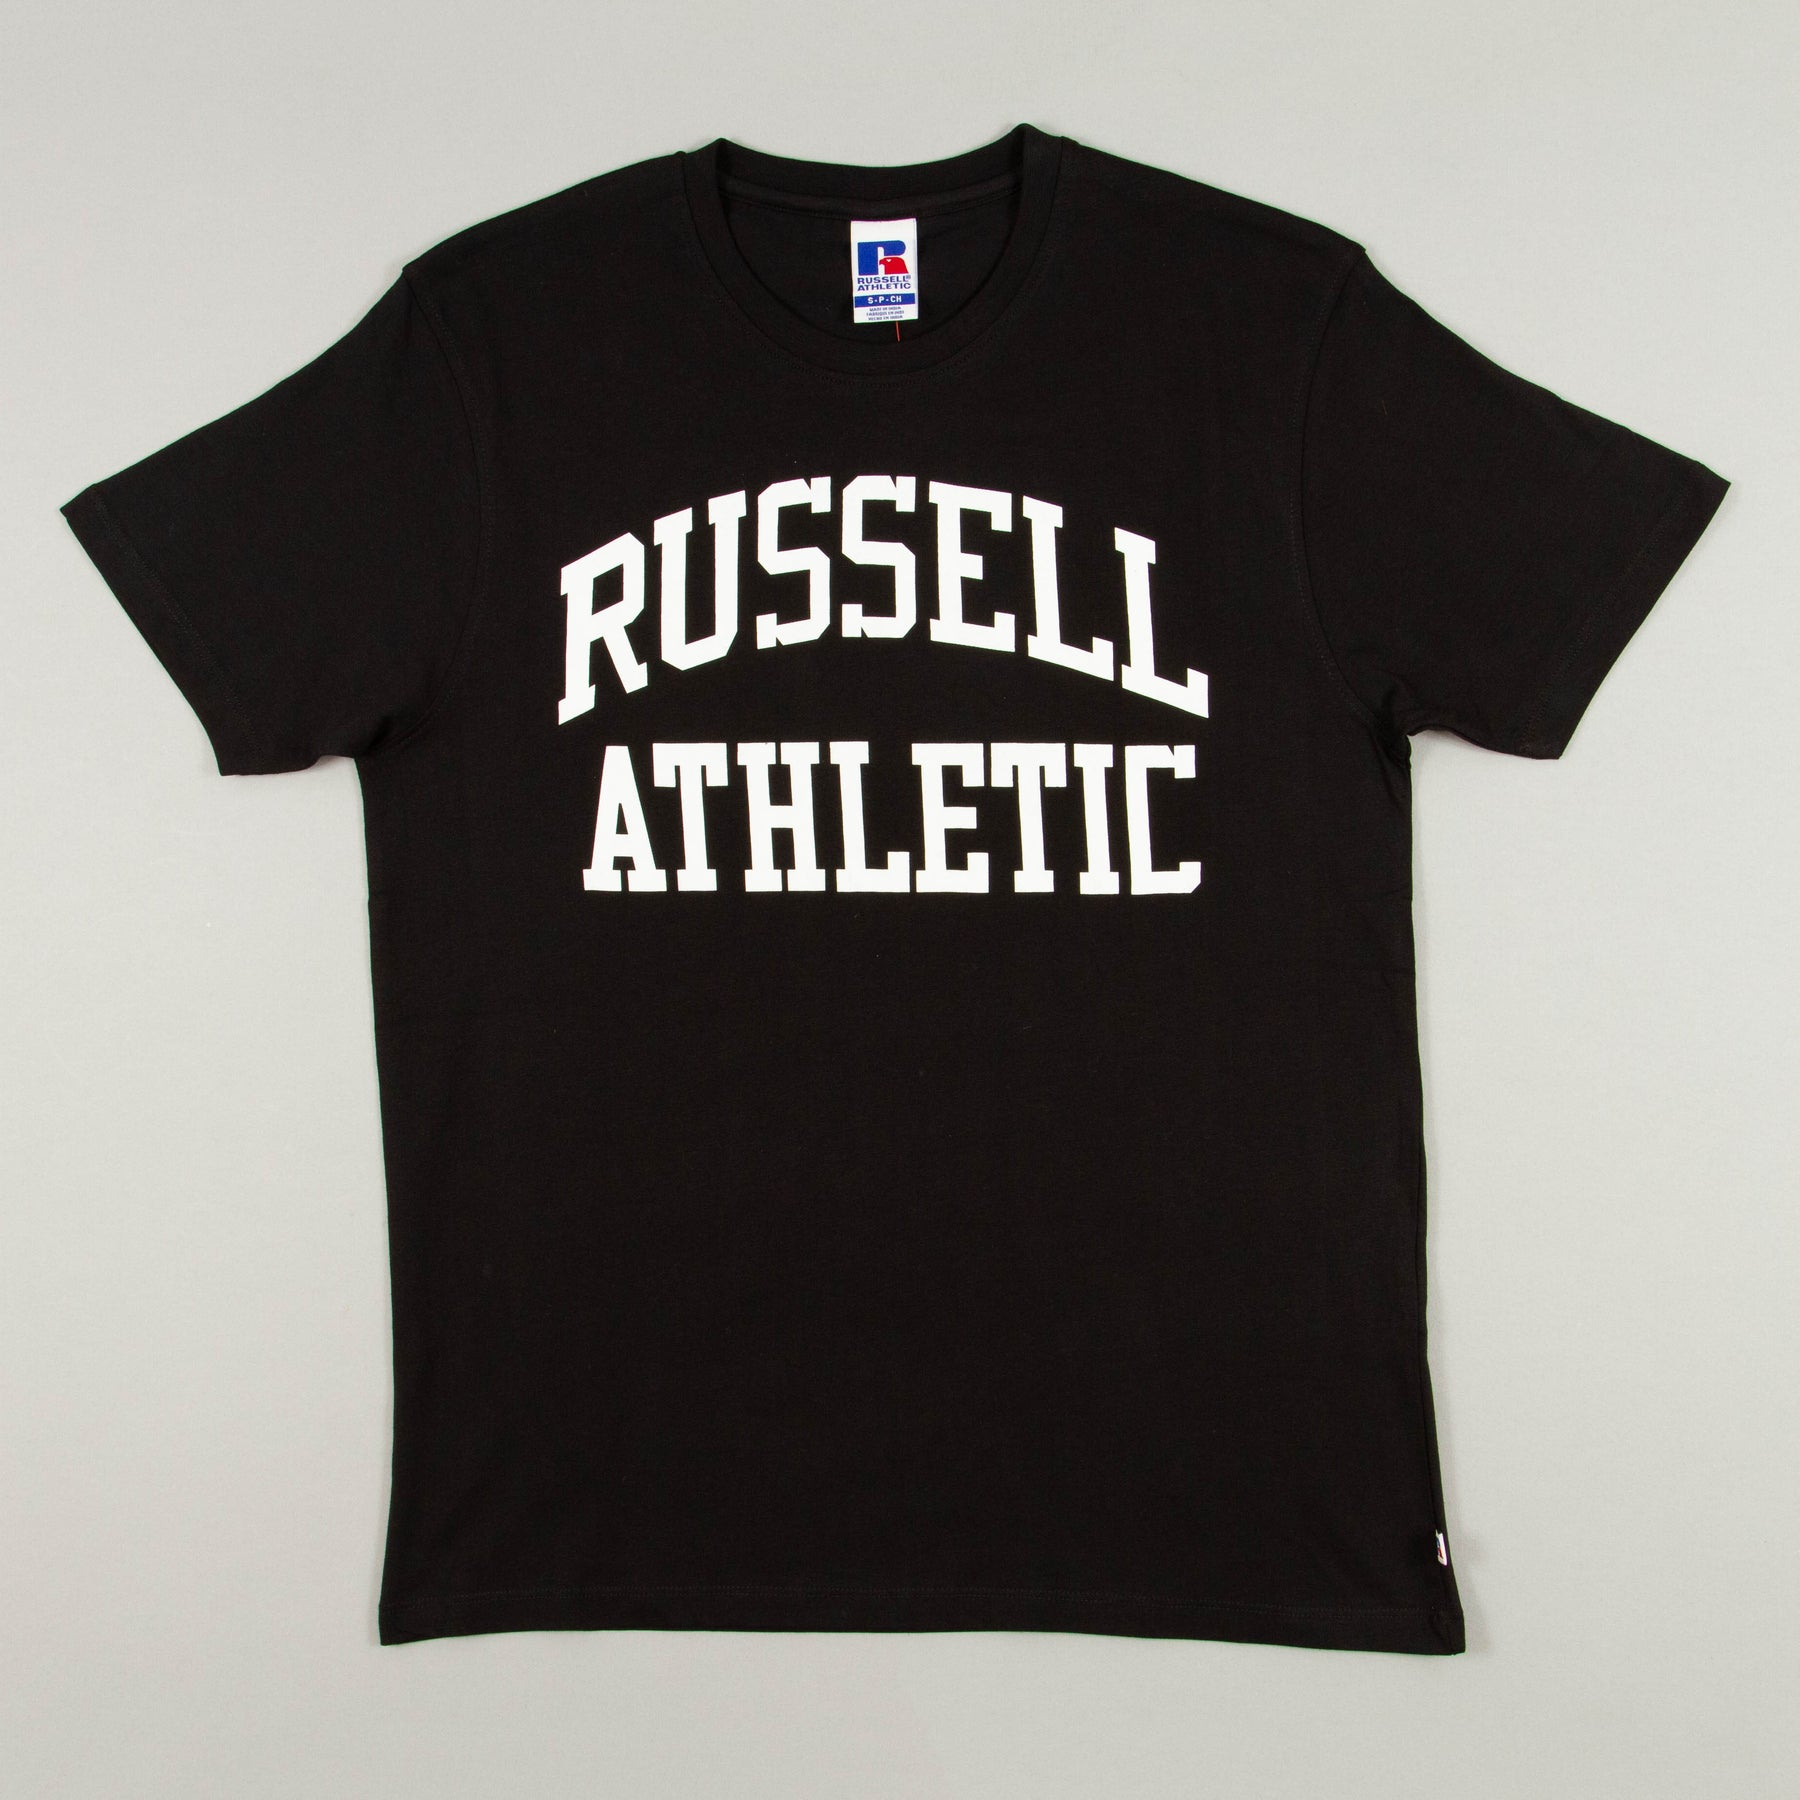 Chest Logo Short Sleeve Crew Neck T-Shirt in BLACKRUSSELL ATHLETIC - CACTWS